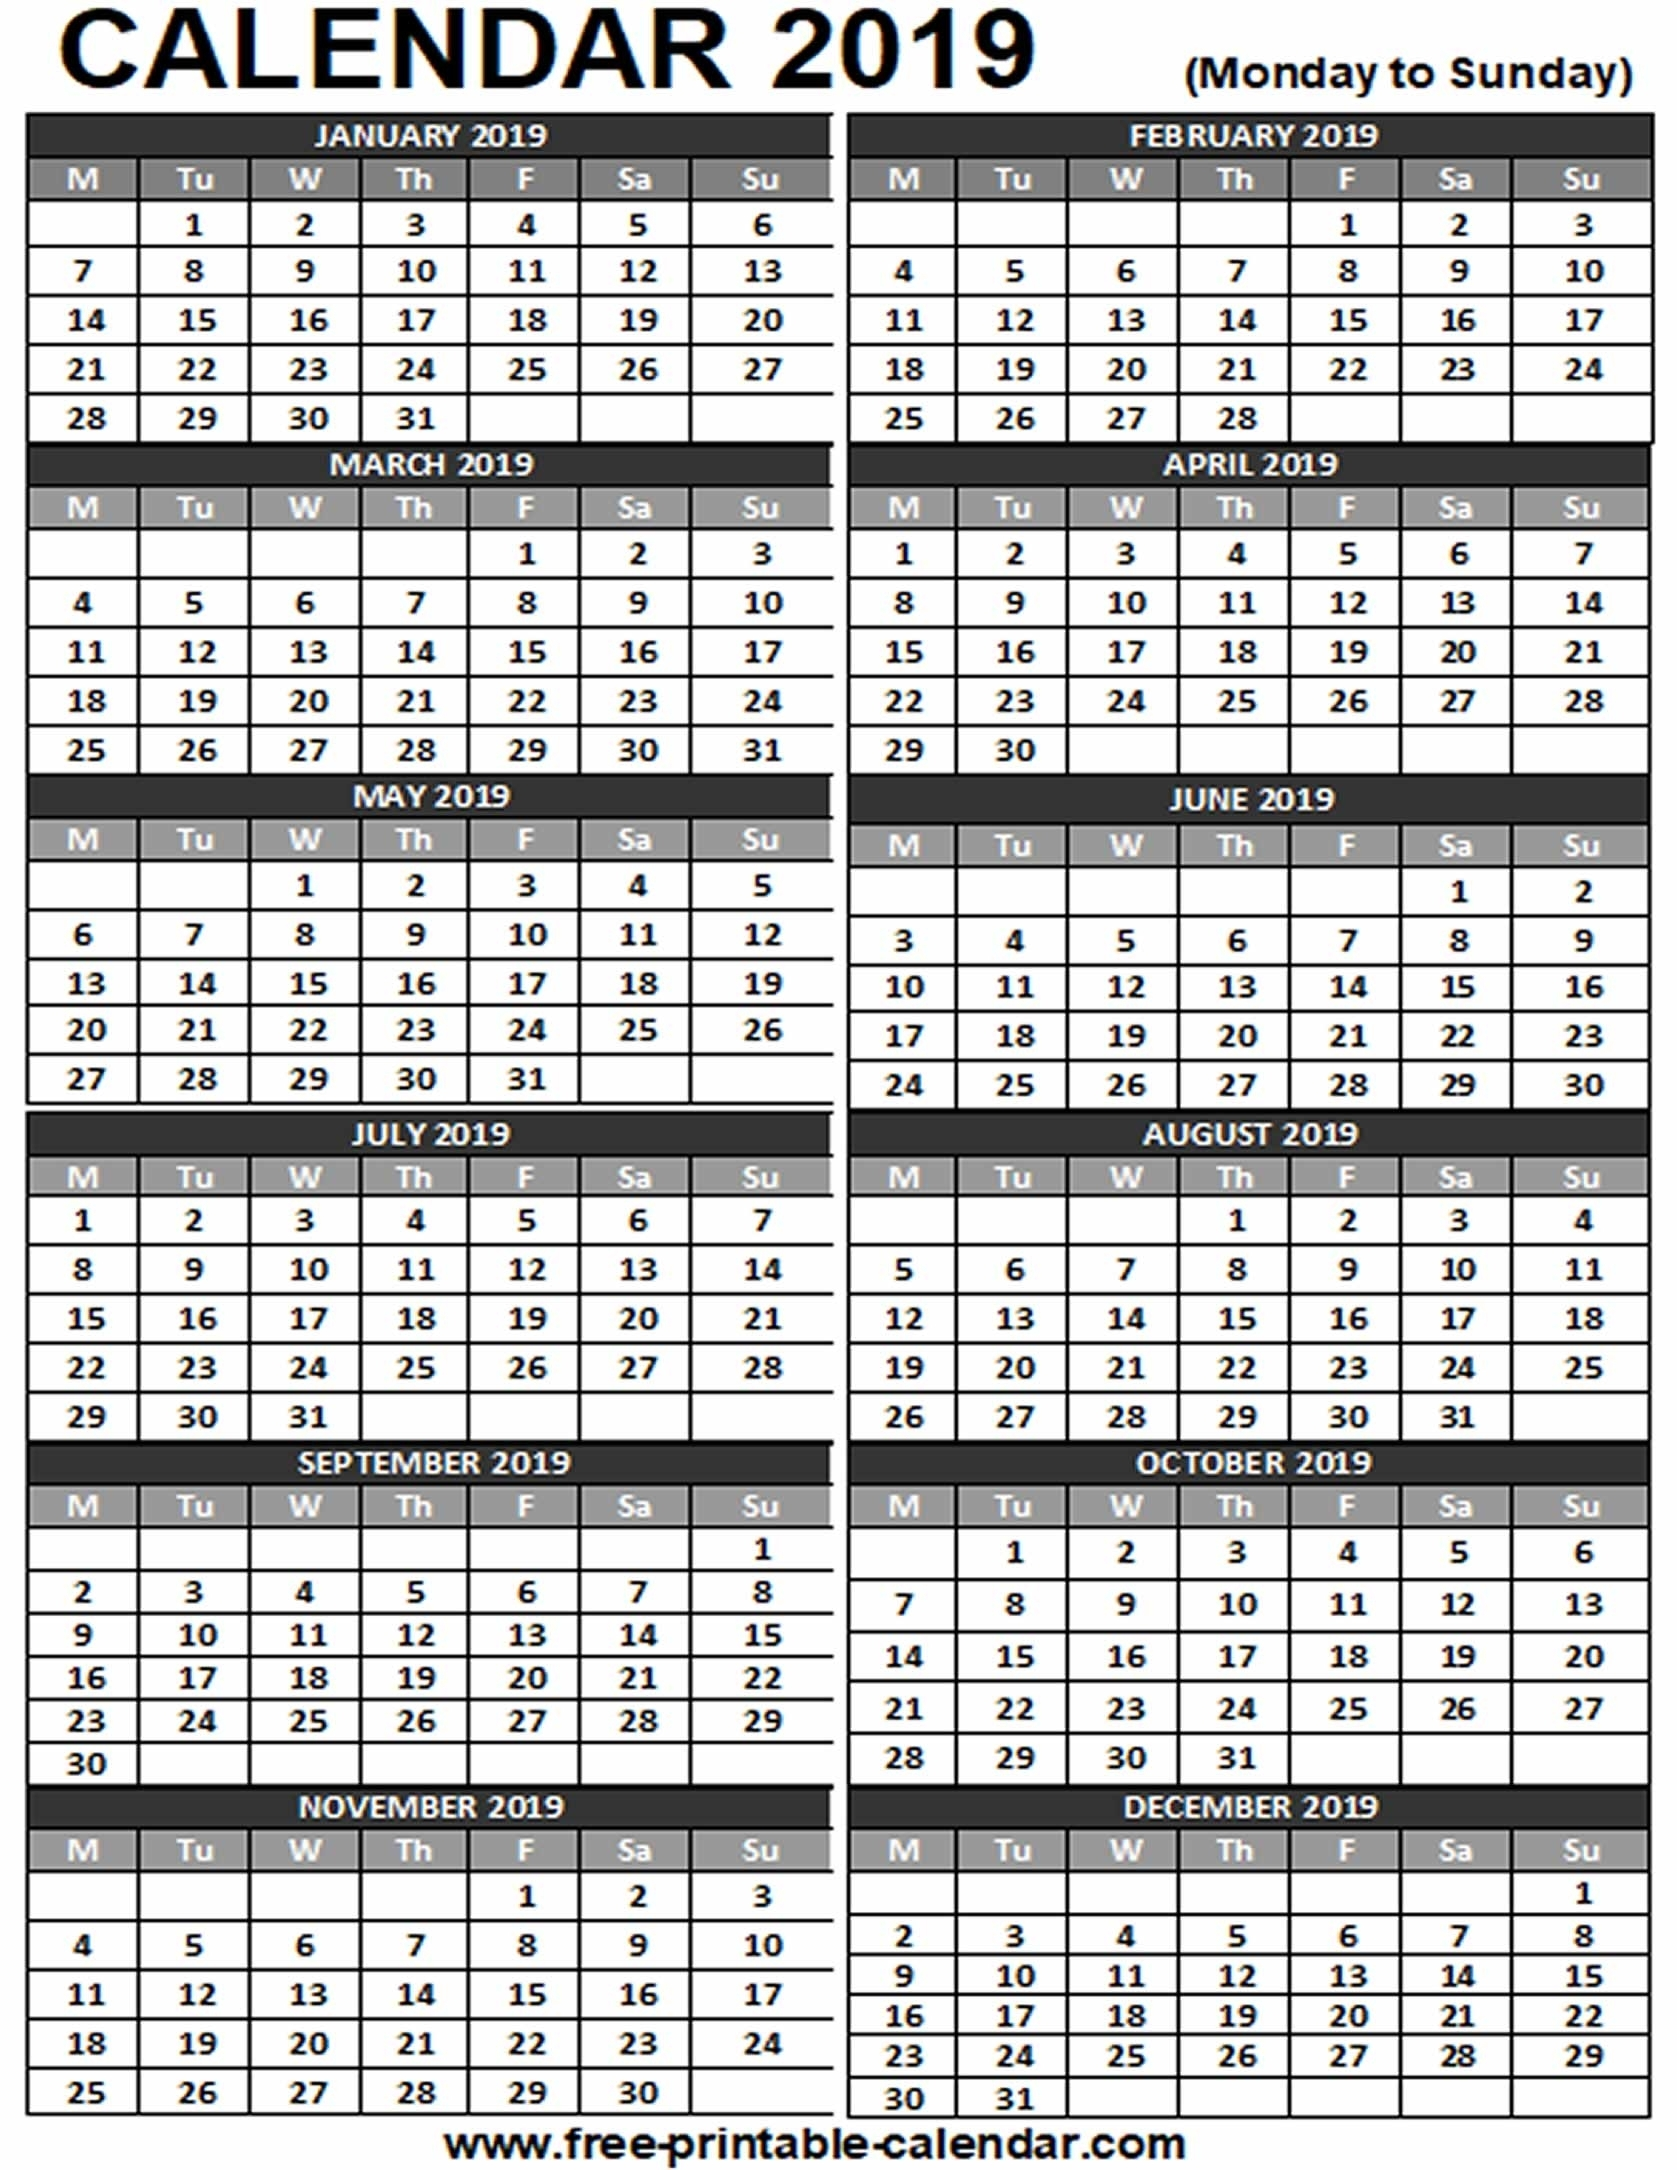 2019 Printable Calendar - Free-Printable-Calendar with 12 Month Calendar On One Page